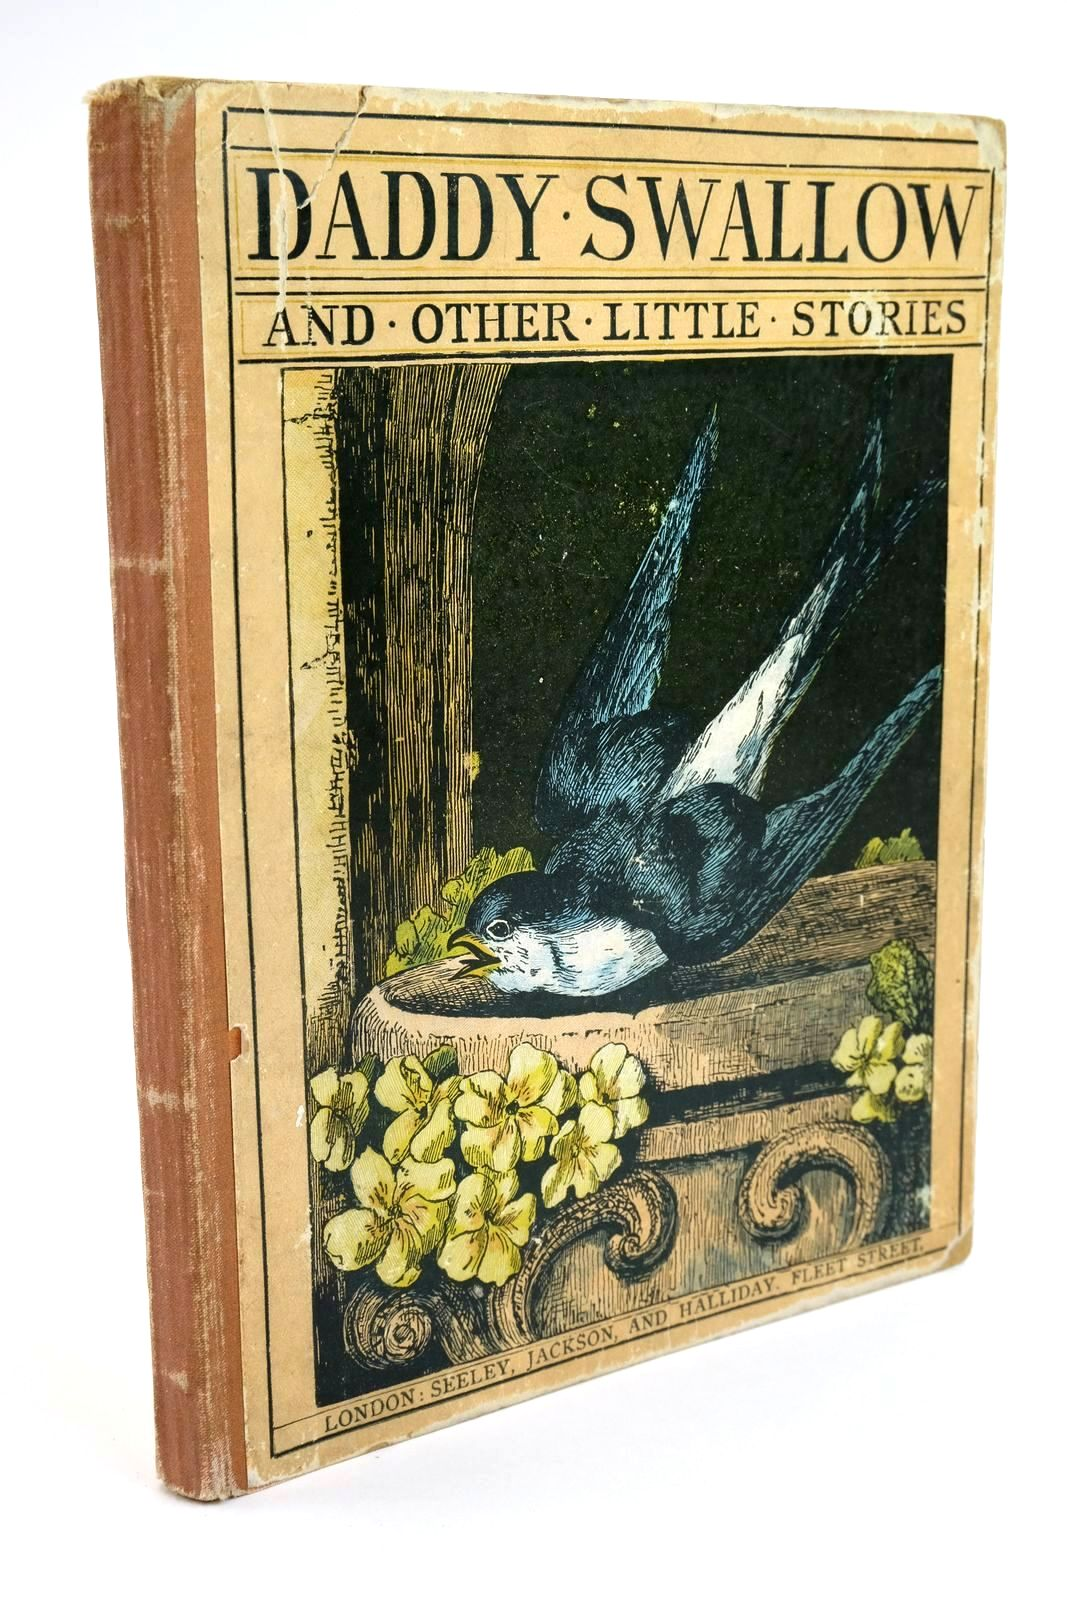 Photo of DADDY SWALLOW AND OTHER LITTLE STORIES published by Seeley, Jackson and Halliday (STOCK CODE: 1321666)  for sale by Stella & Rose's Books